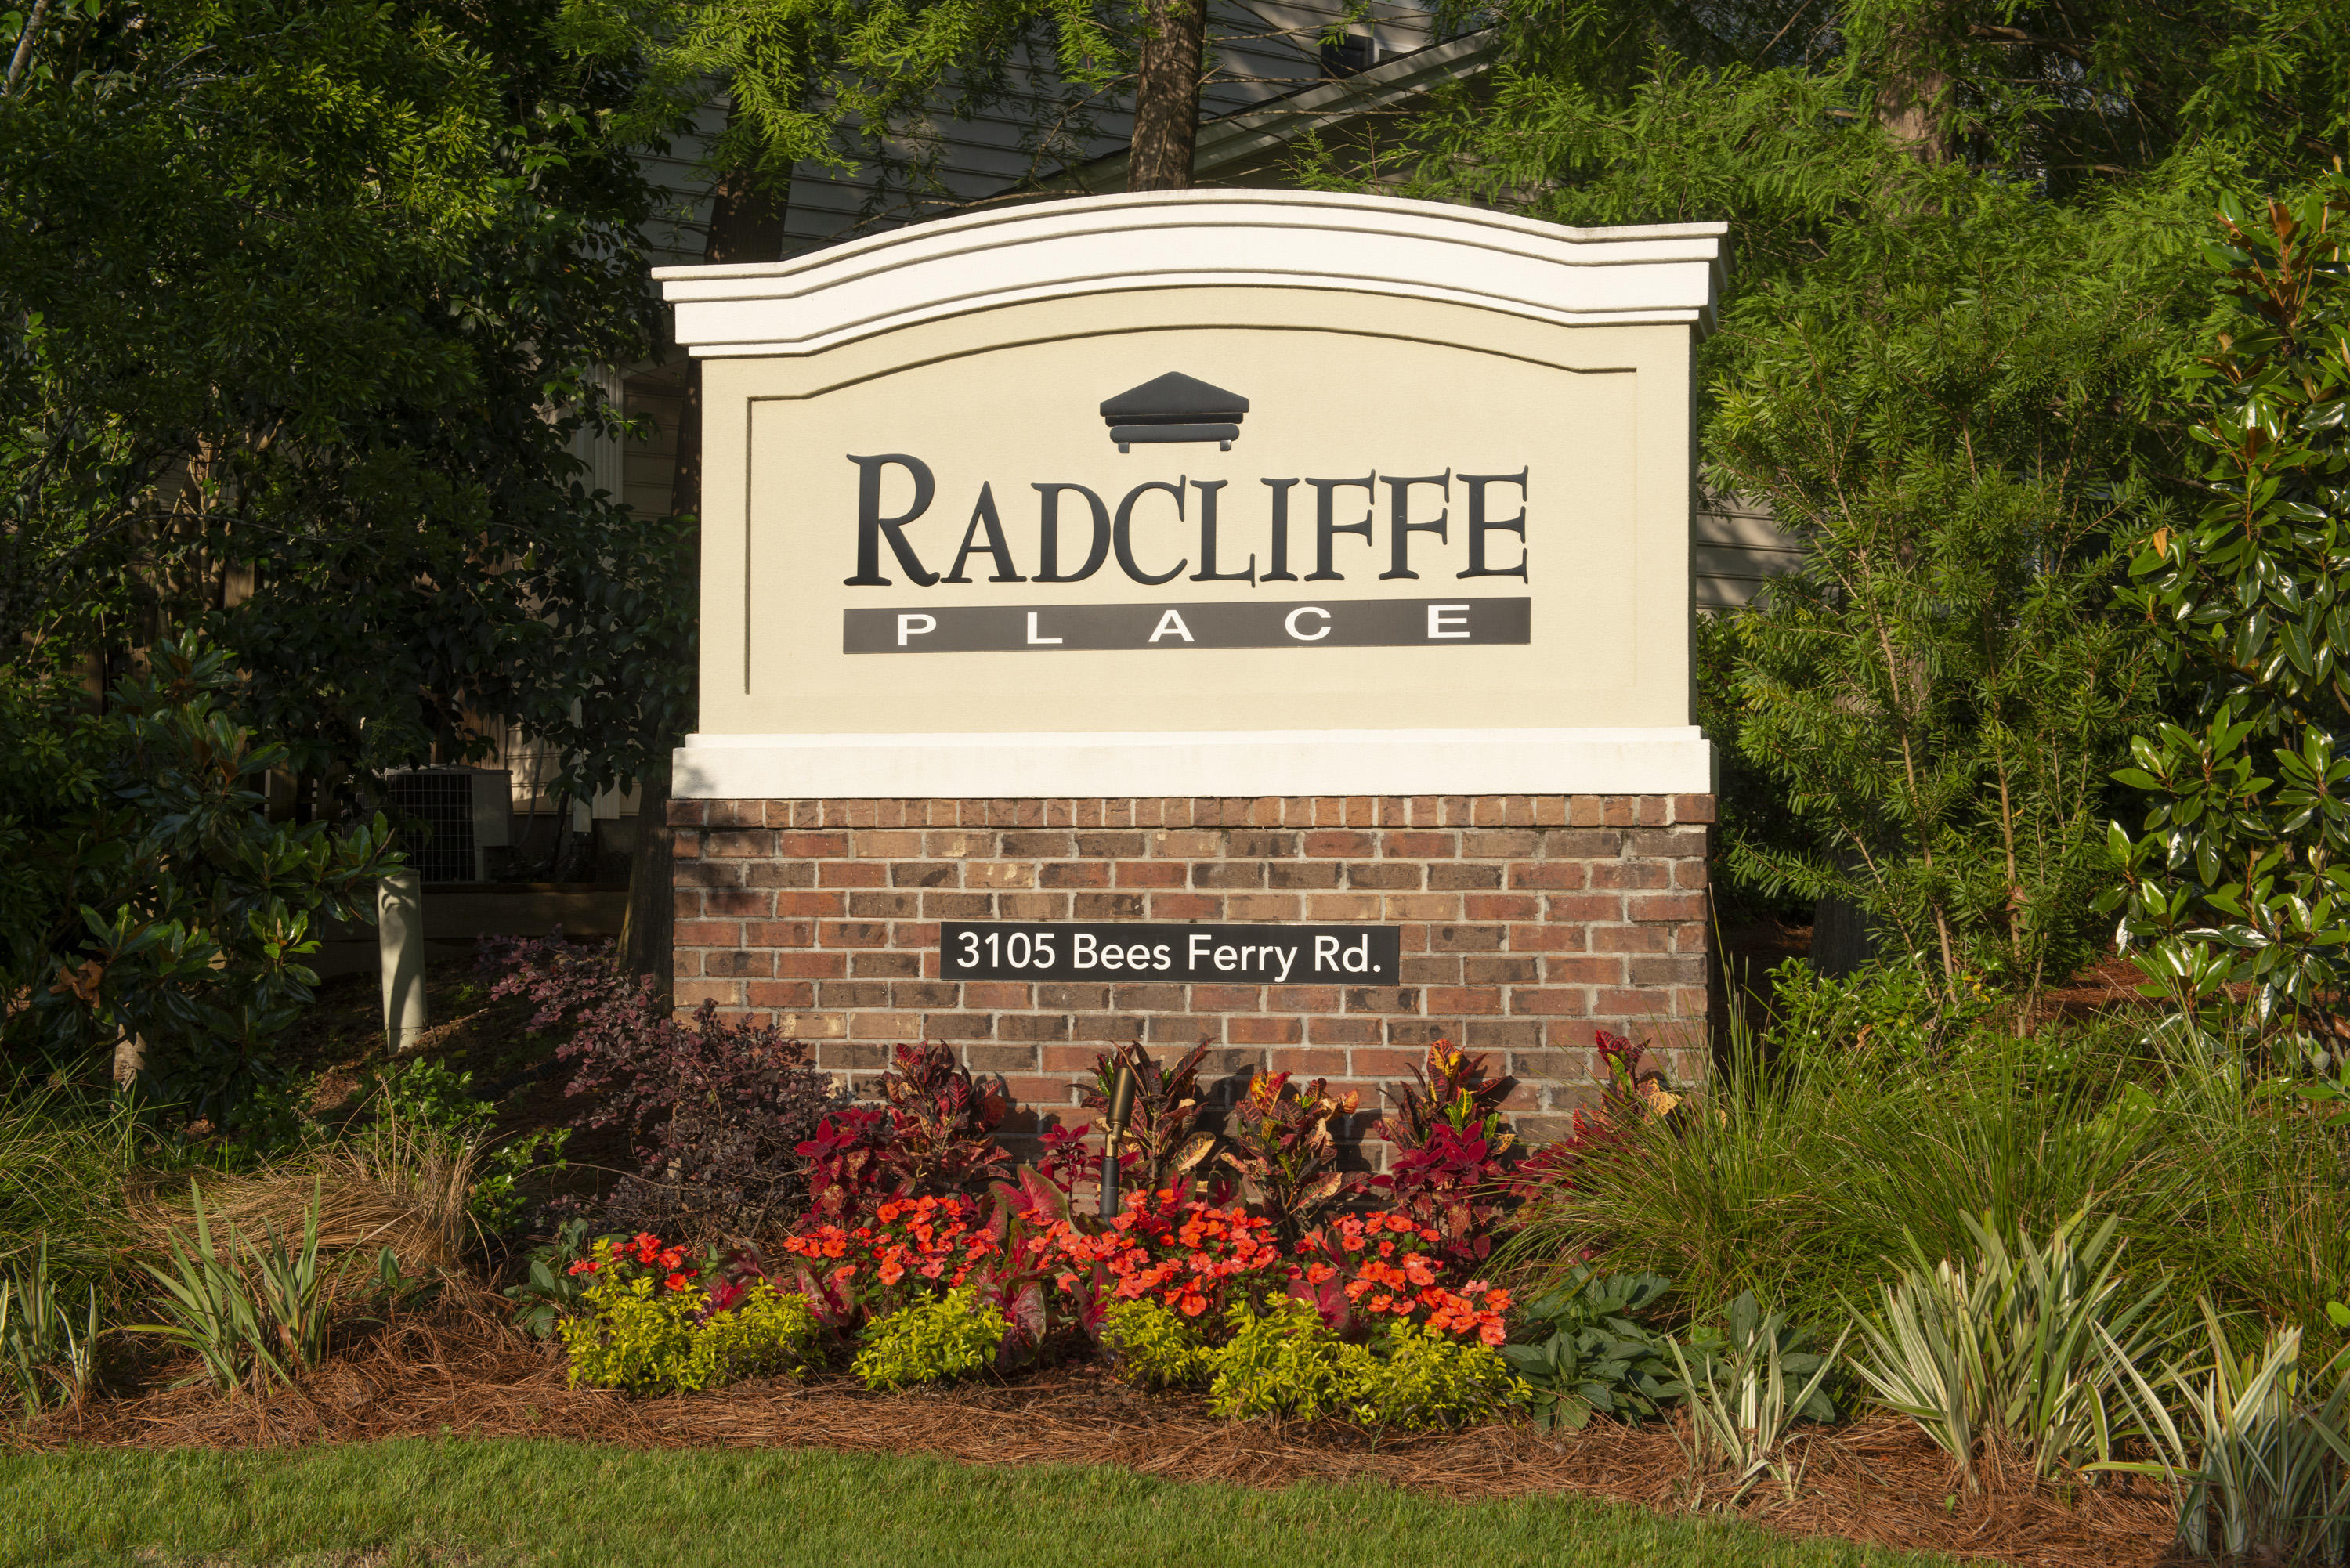 Radcliffe Place Homes For Sale - 4000 Radcliffe Place, Charleston, SC - 21